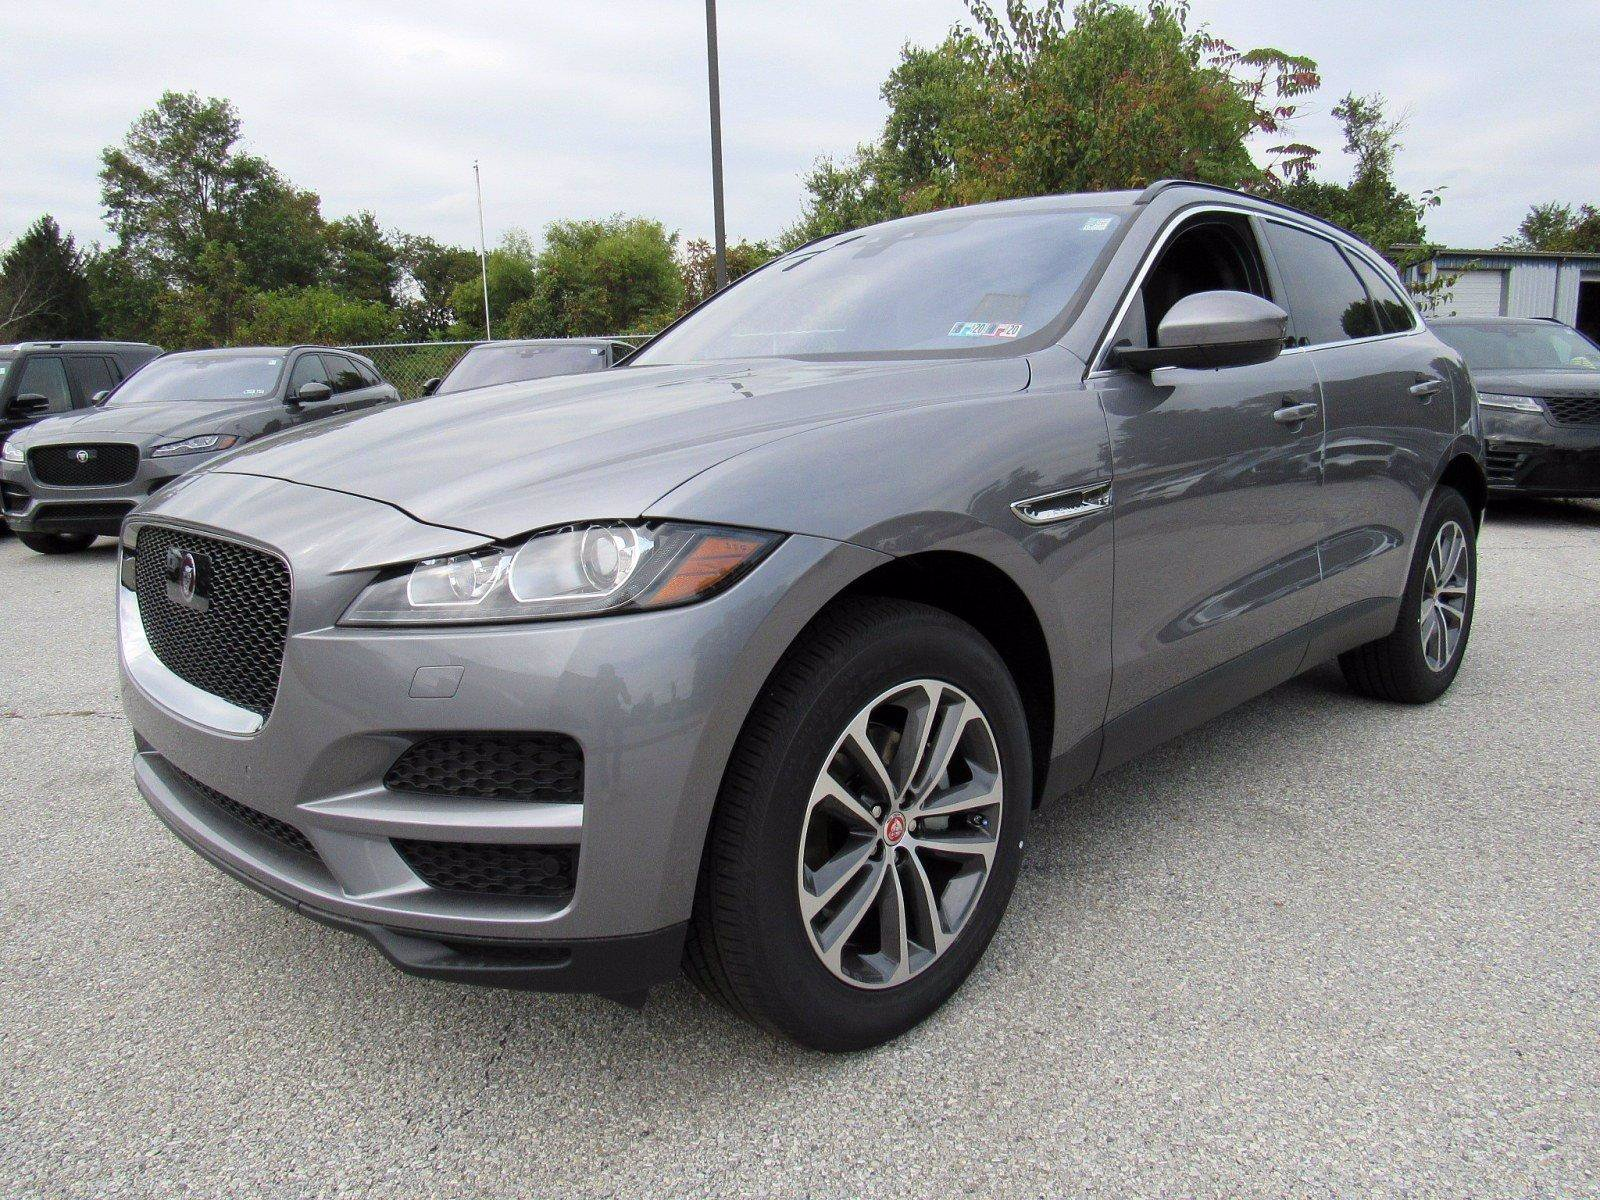 Certified Pre-Owned 2020 Jaguar F-PACE 25t Premium AWD